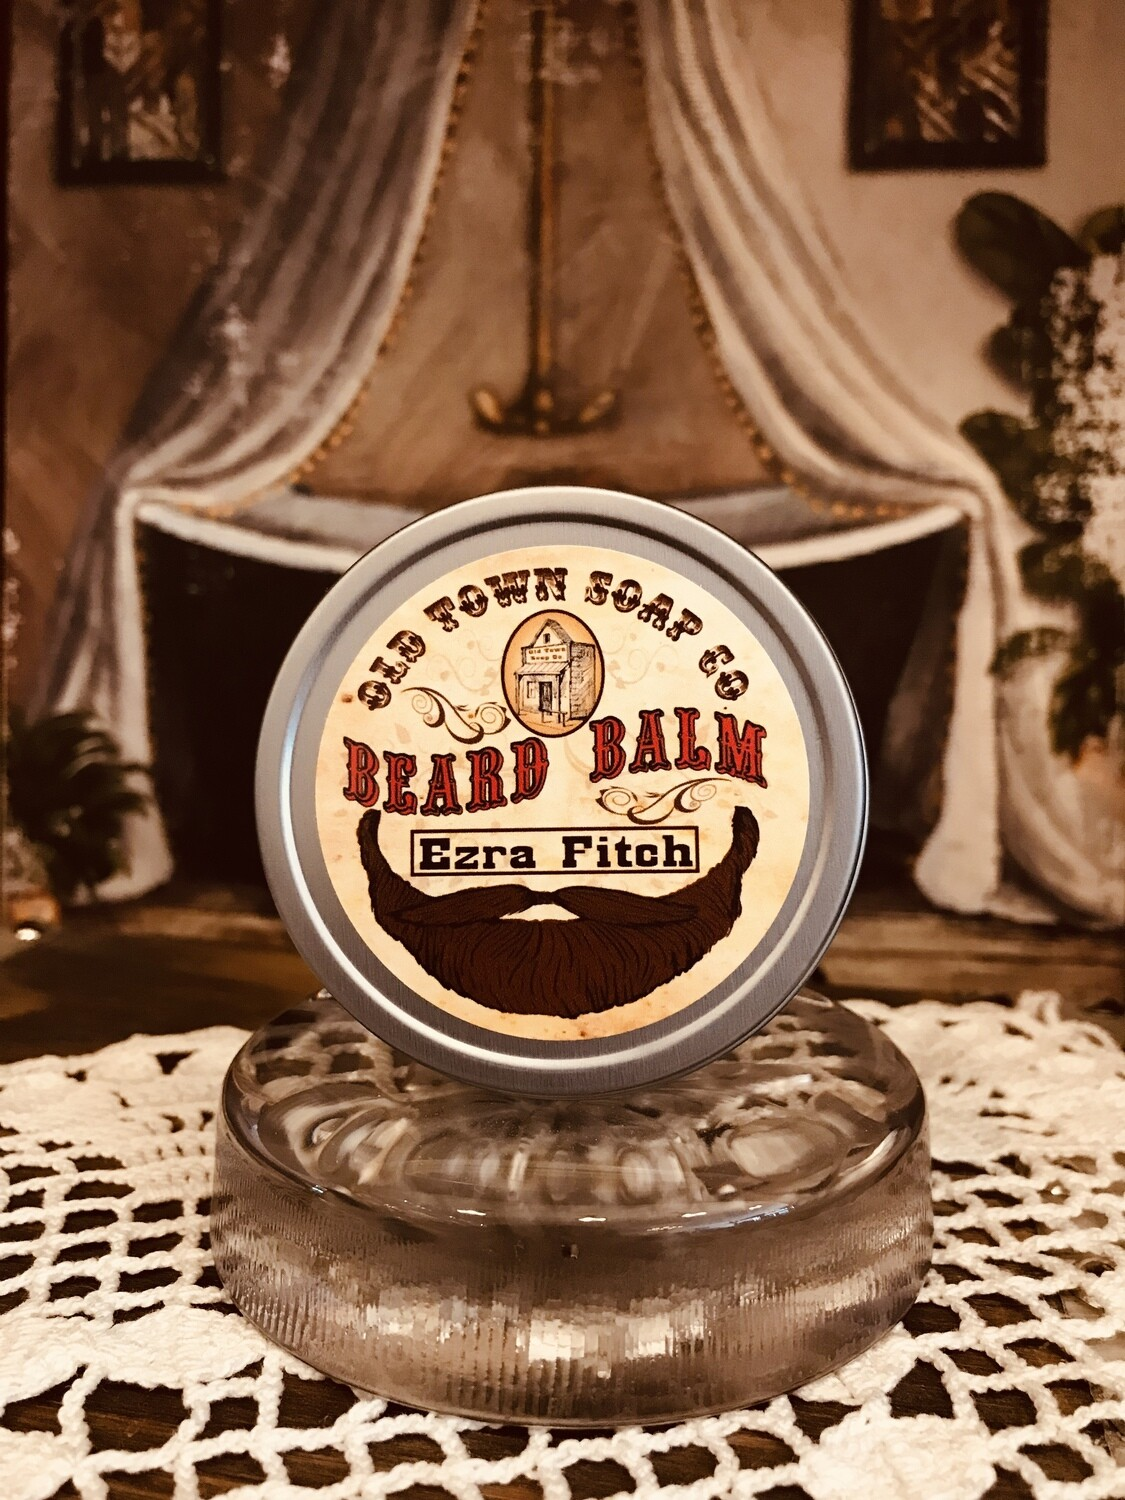 Ezra Fitch -Beard Balm